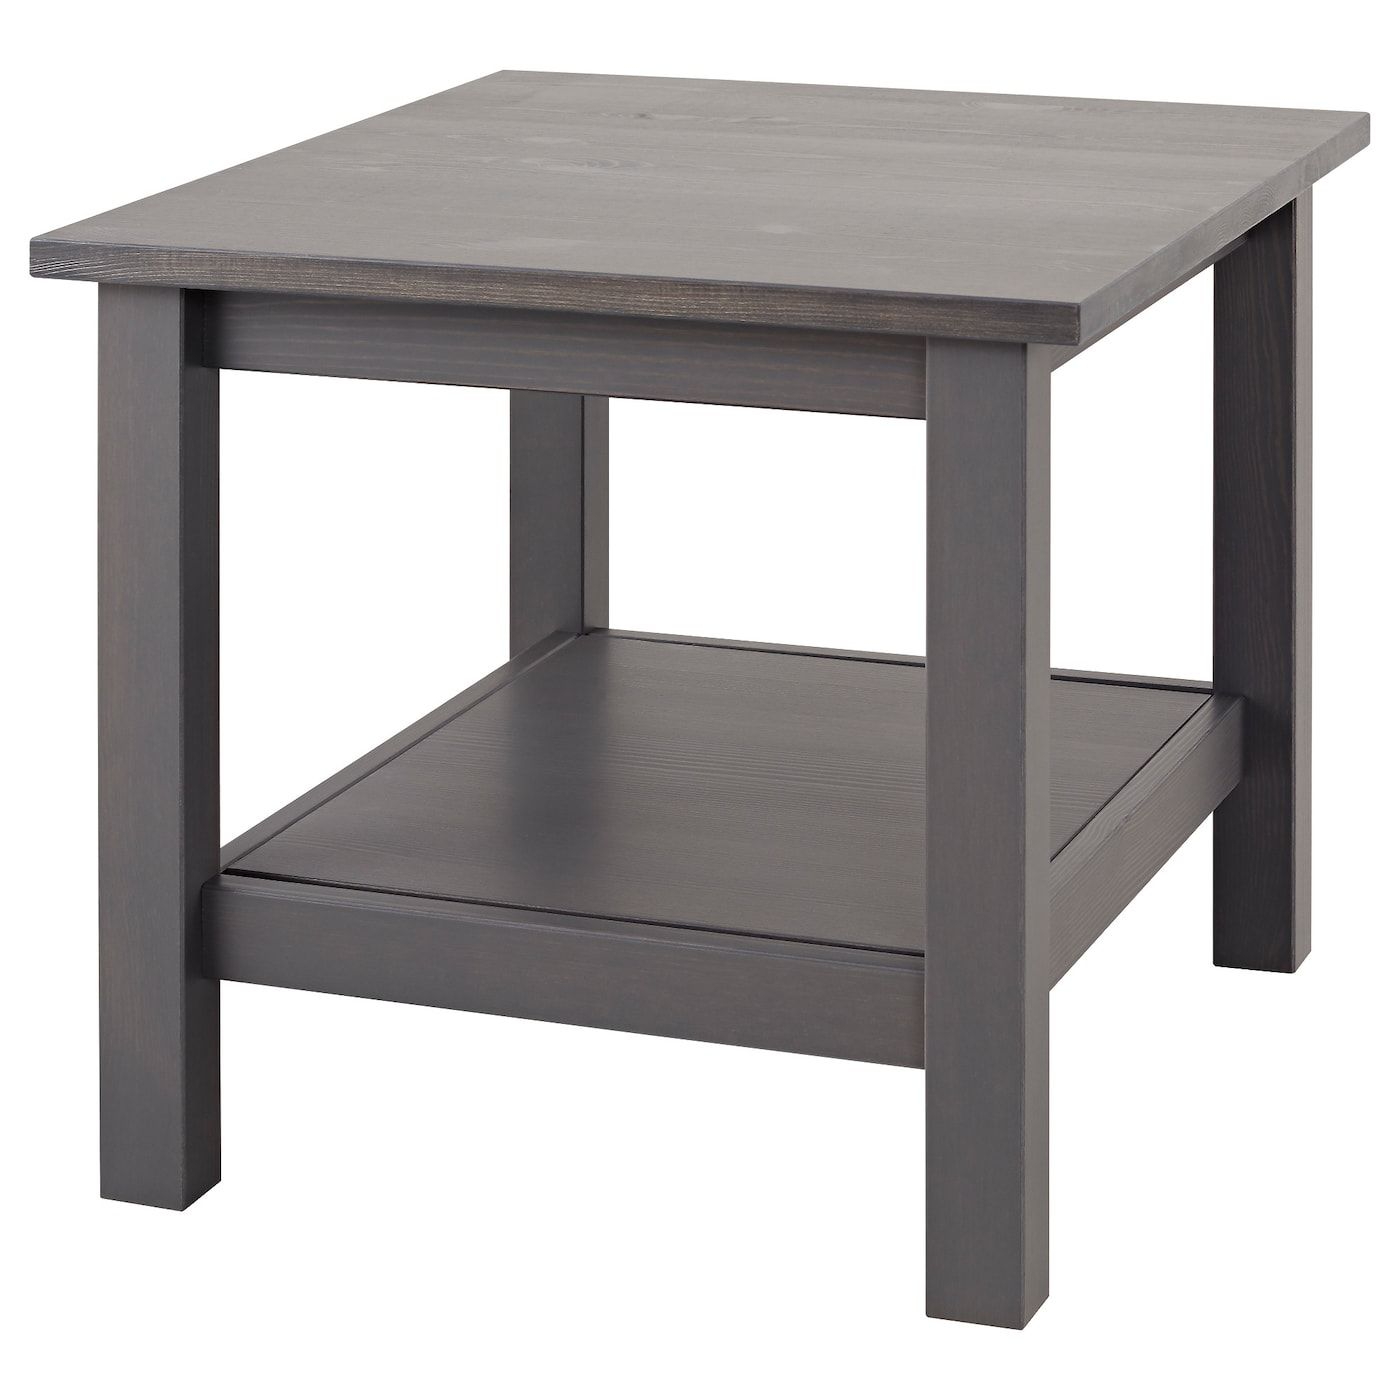 Hemnes Side Table Dark Gray Gray Stained 21 5 8x21 5 8 Grey